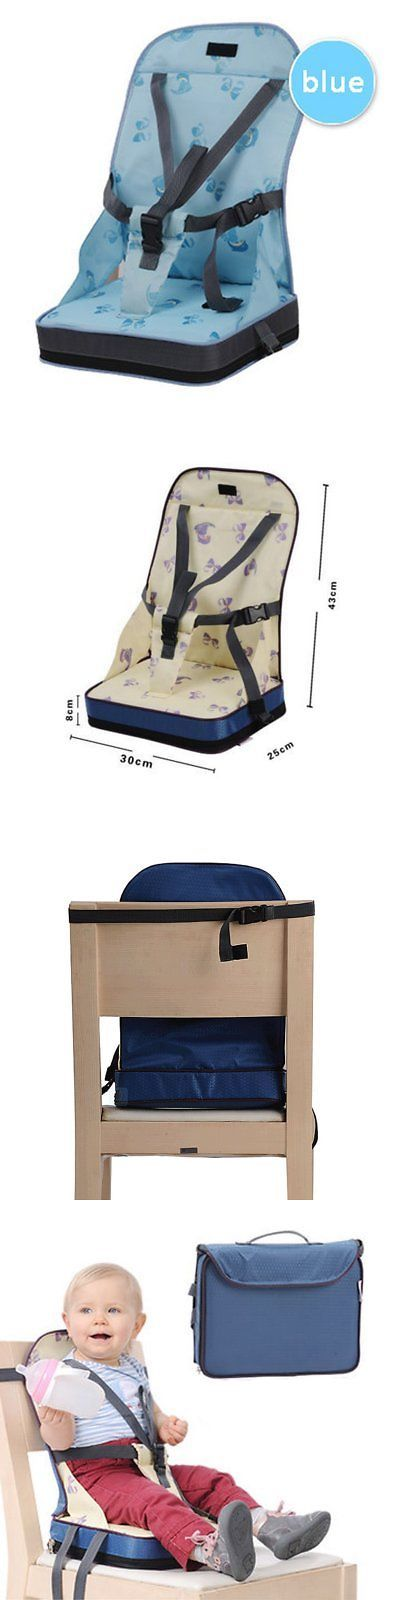 Best 25 High Chairs & Booster Seats Ideas On Pinterest  Baby Cool Booster Seat For Dining Room Chair Design Decoration